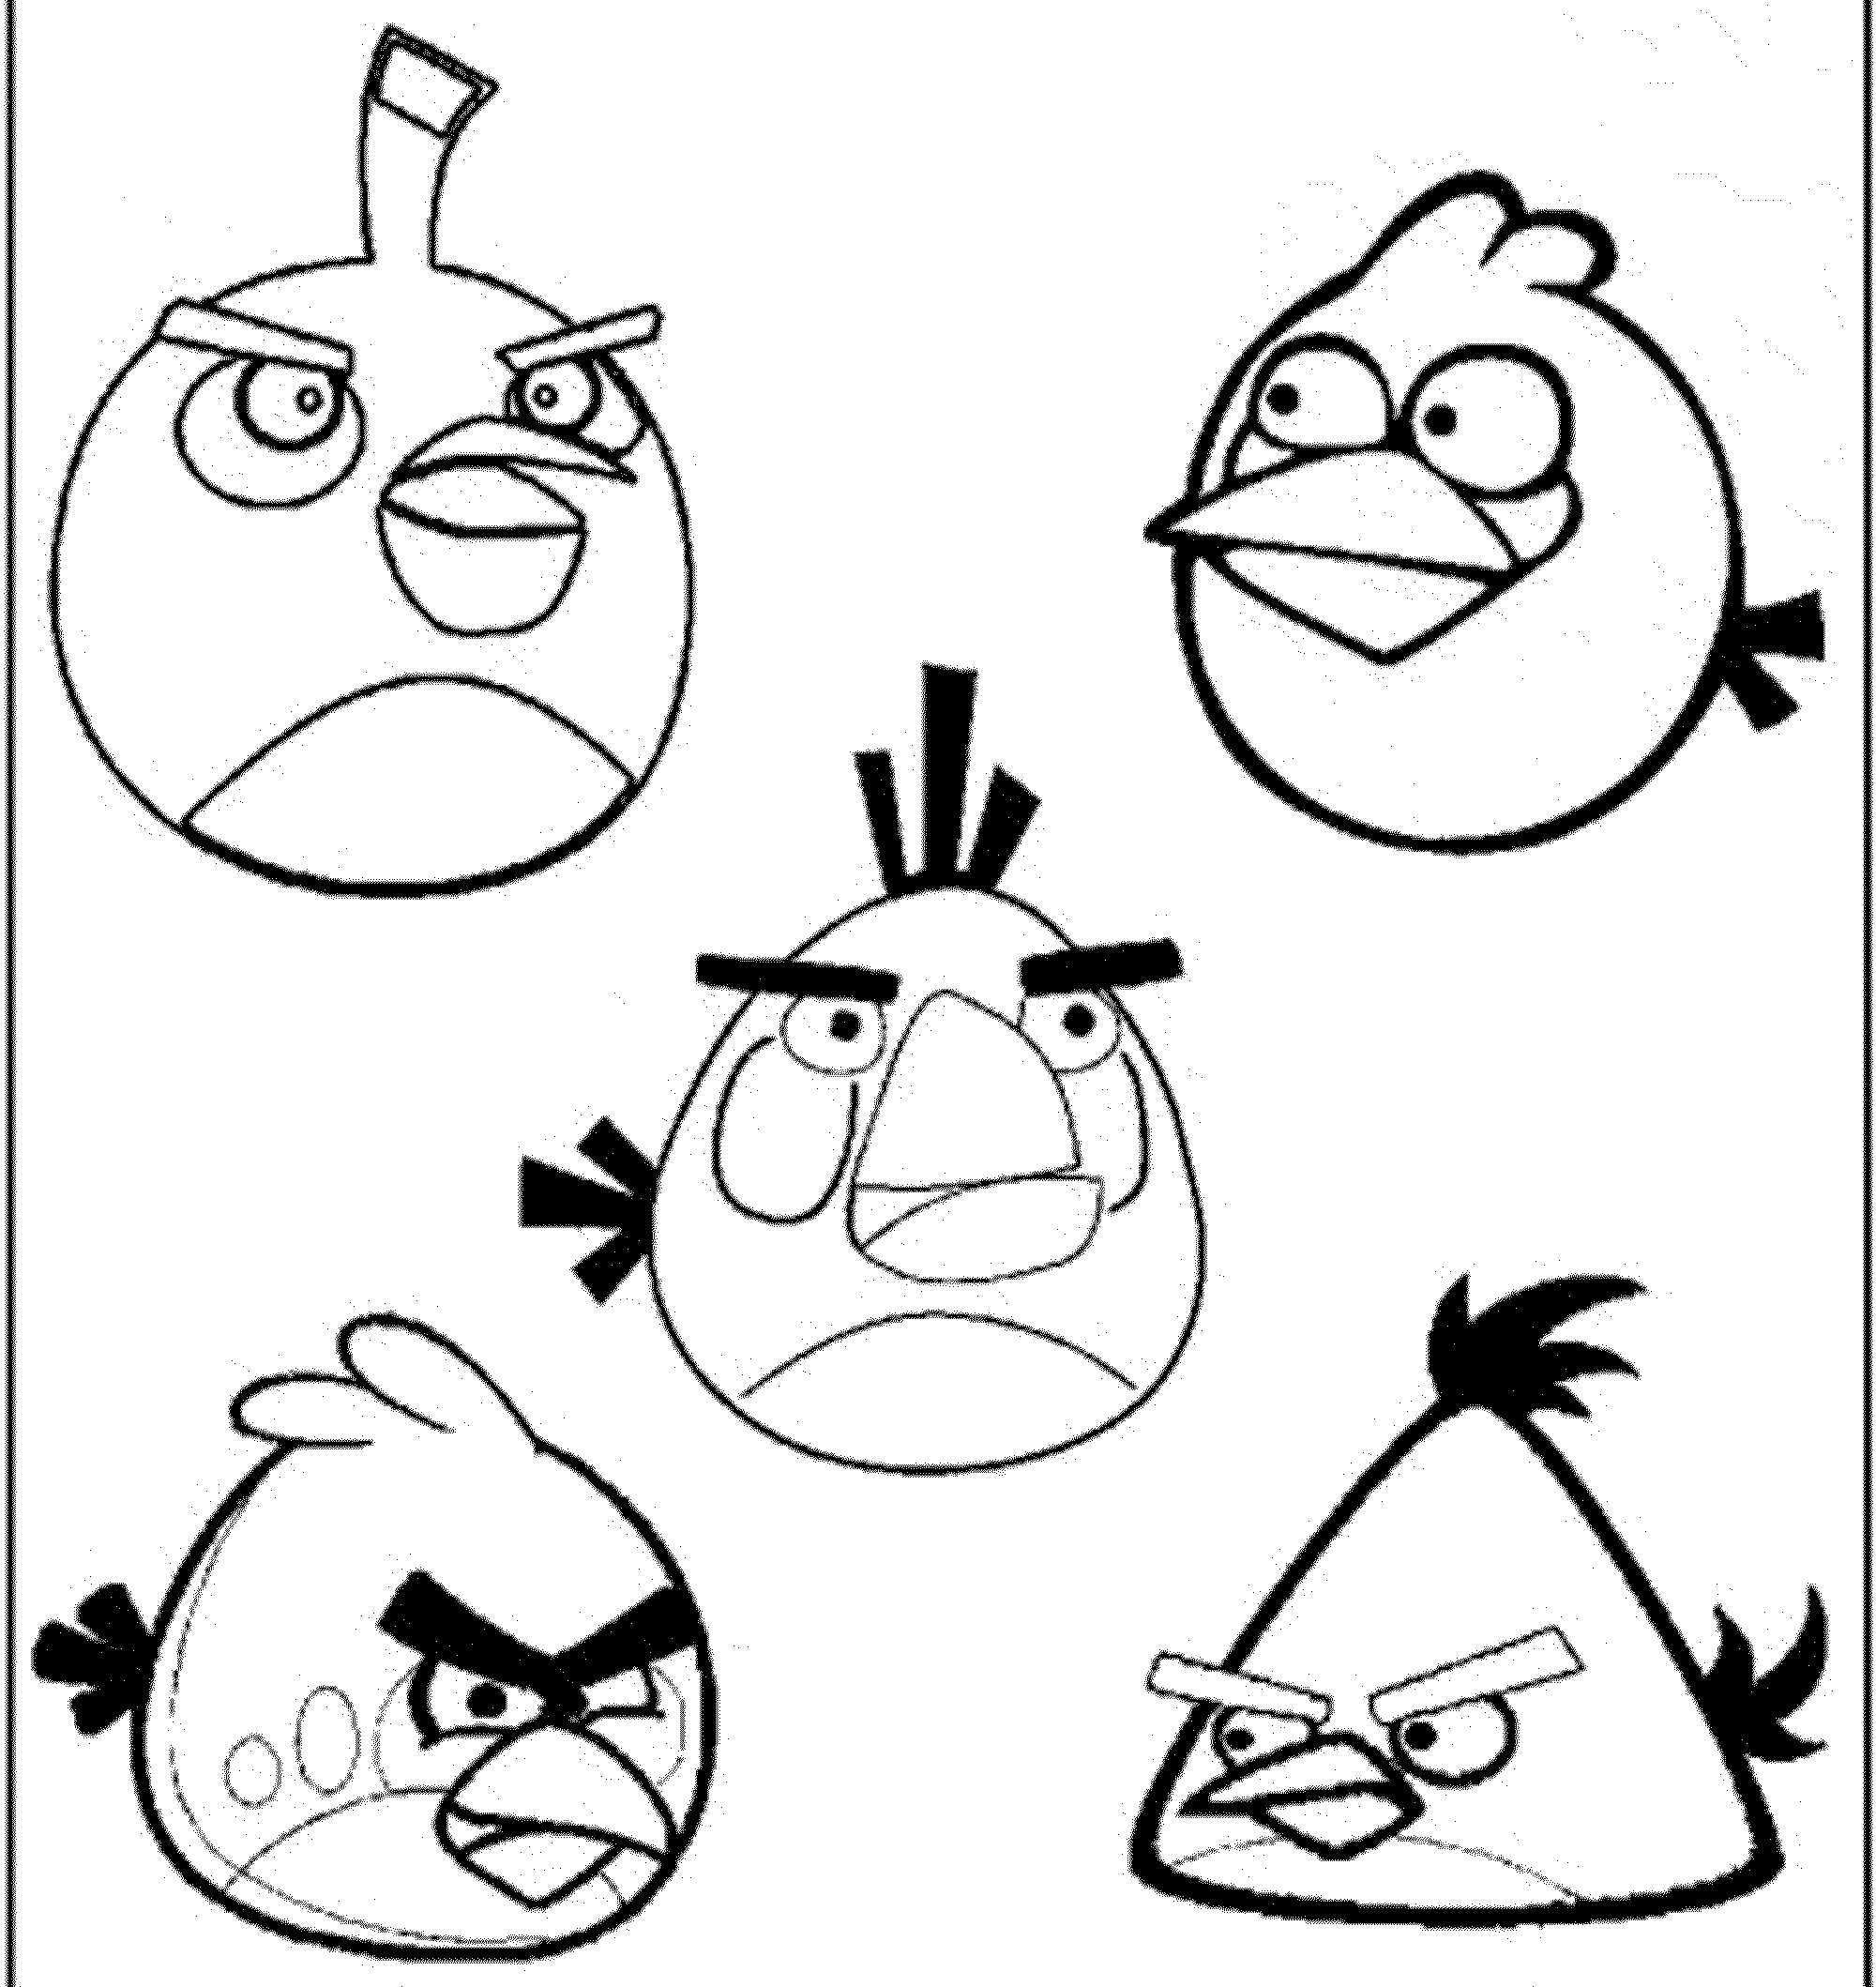 Angry Birds Characters Coloring Pages Dukabooks Bird Coloring Pages Angry Bird Pictures Coloring Pages